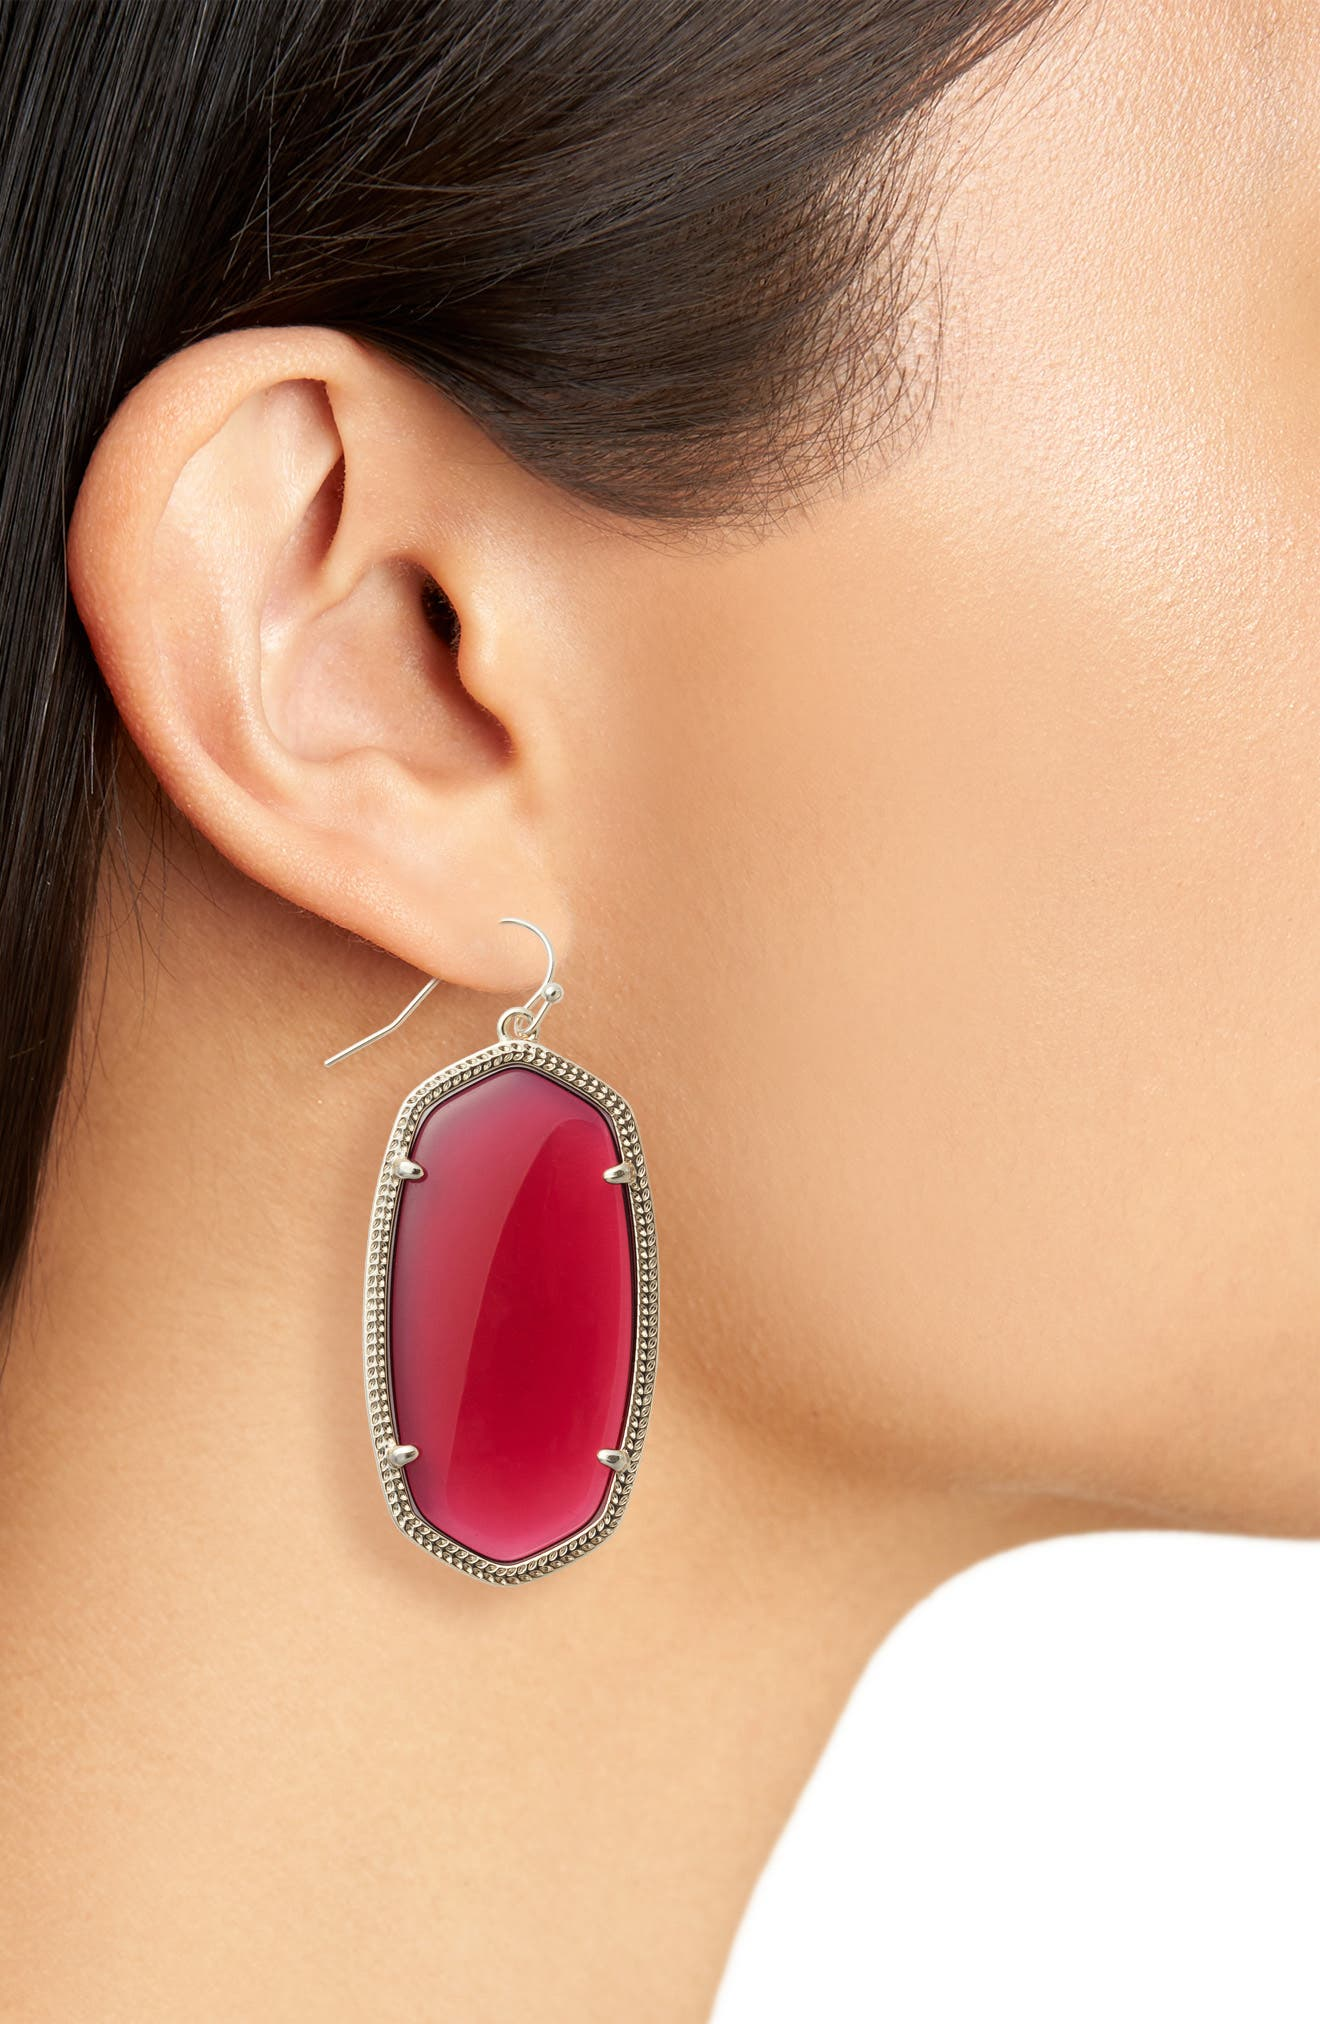 Danielle - Large Oval Statement Earrings,                             Alternate thumbnail 113, color,